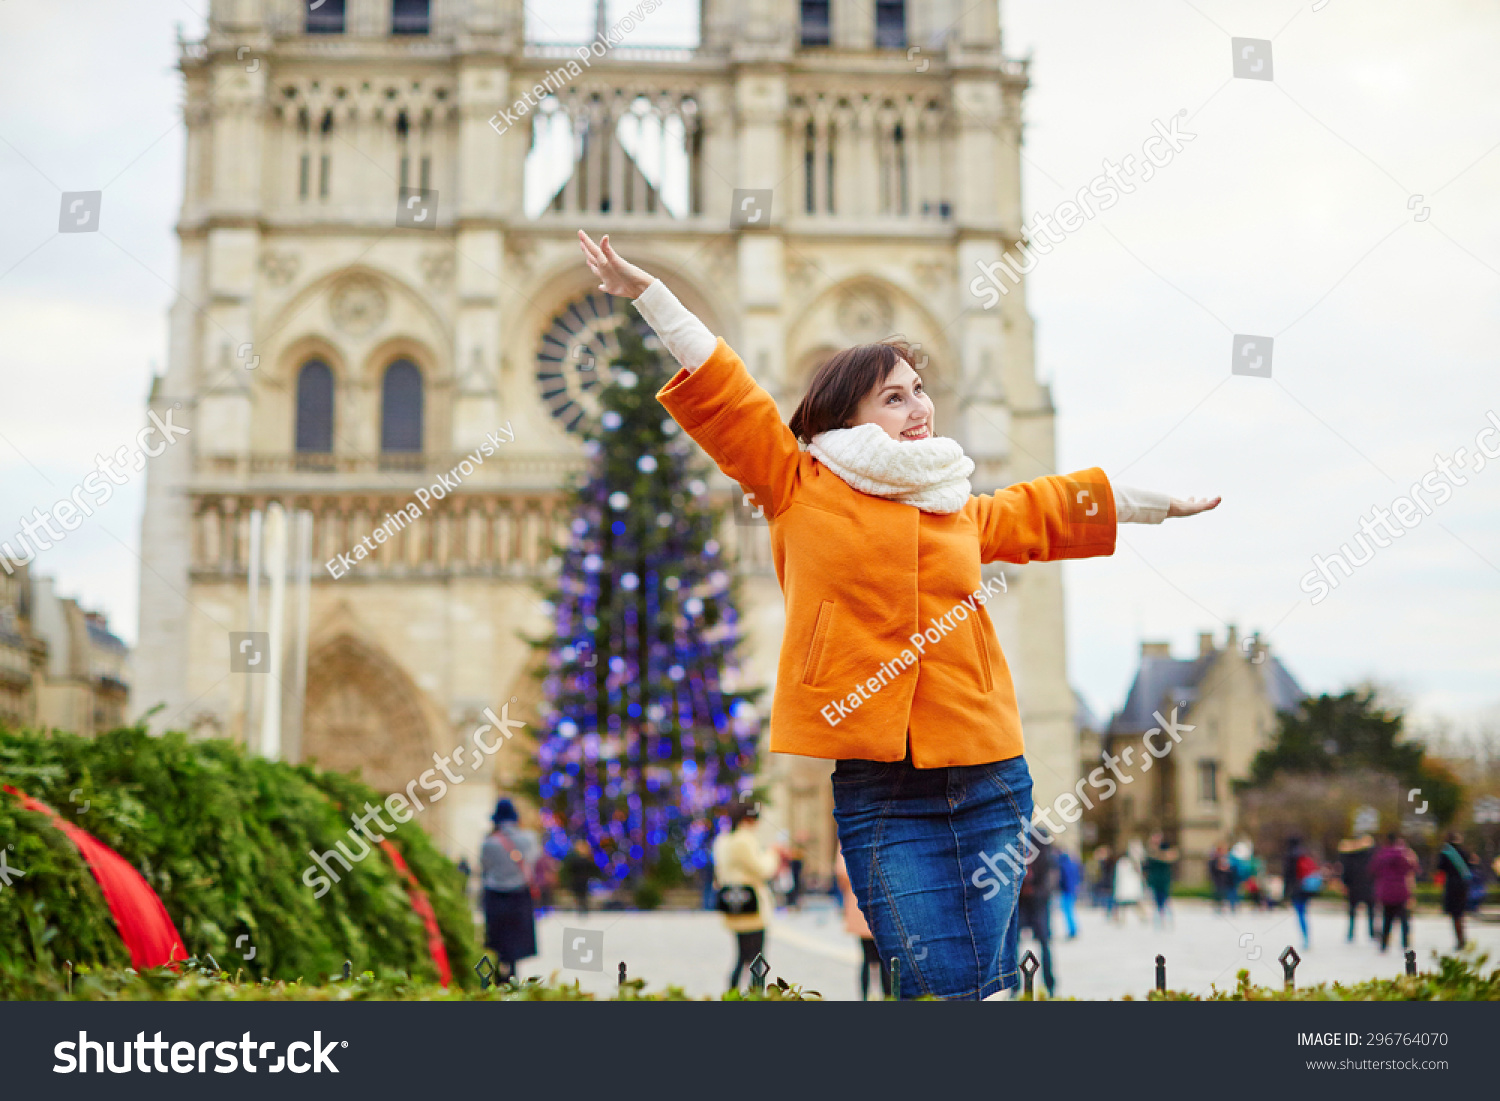 Happy Young Tourist Paris On Winter Stock Photo 296764070 ...